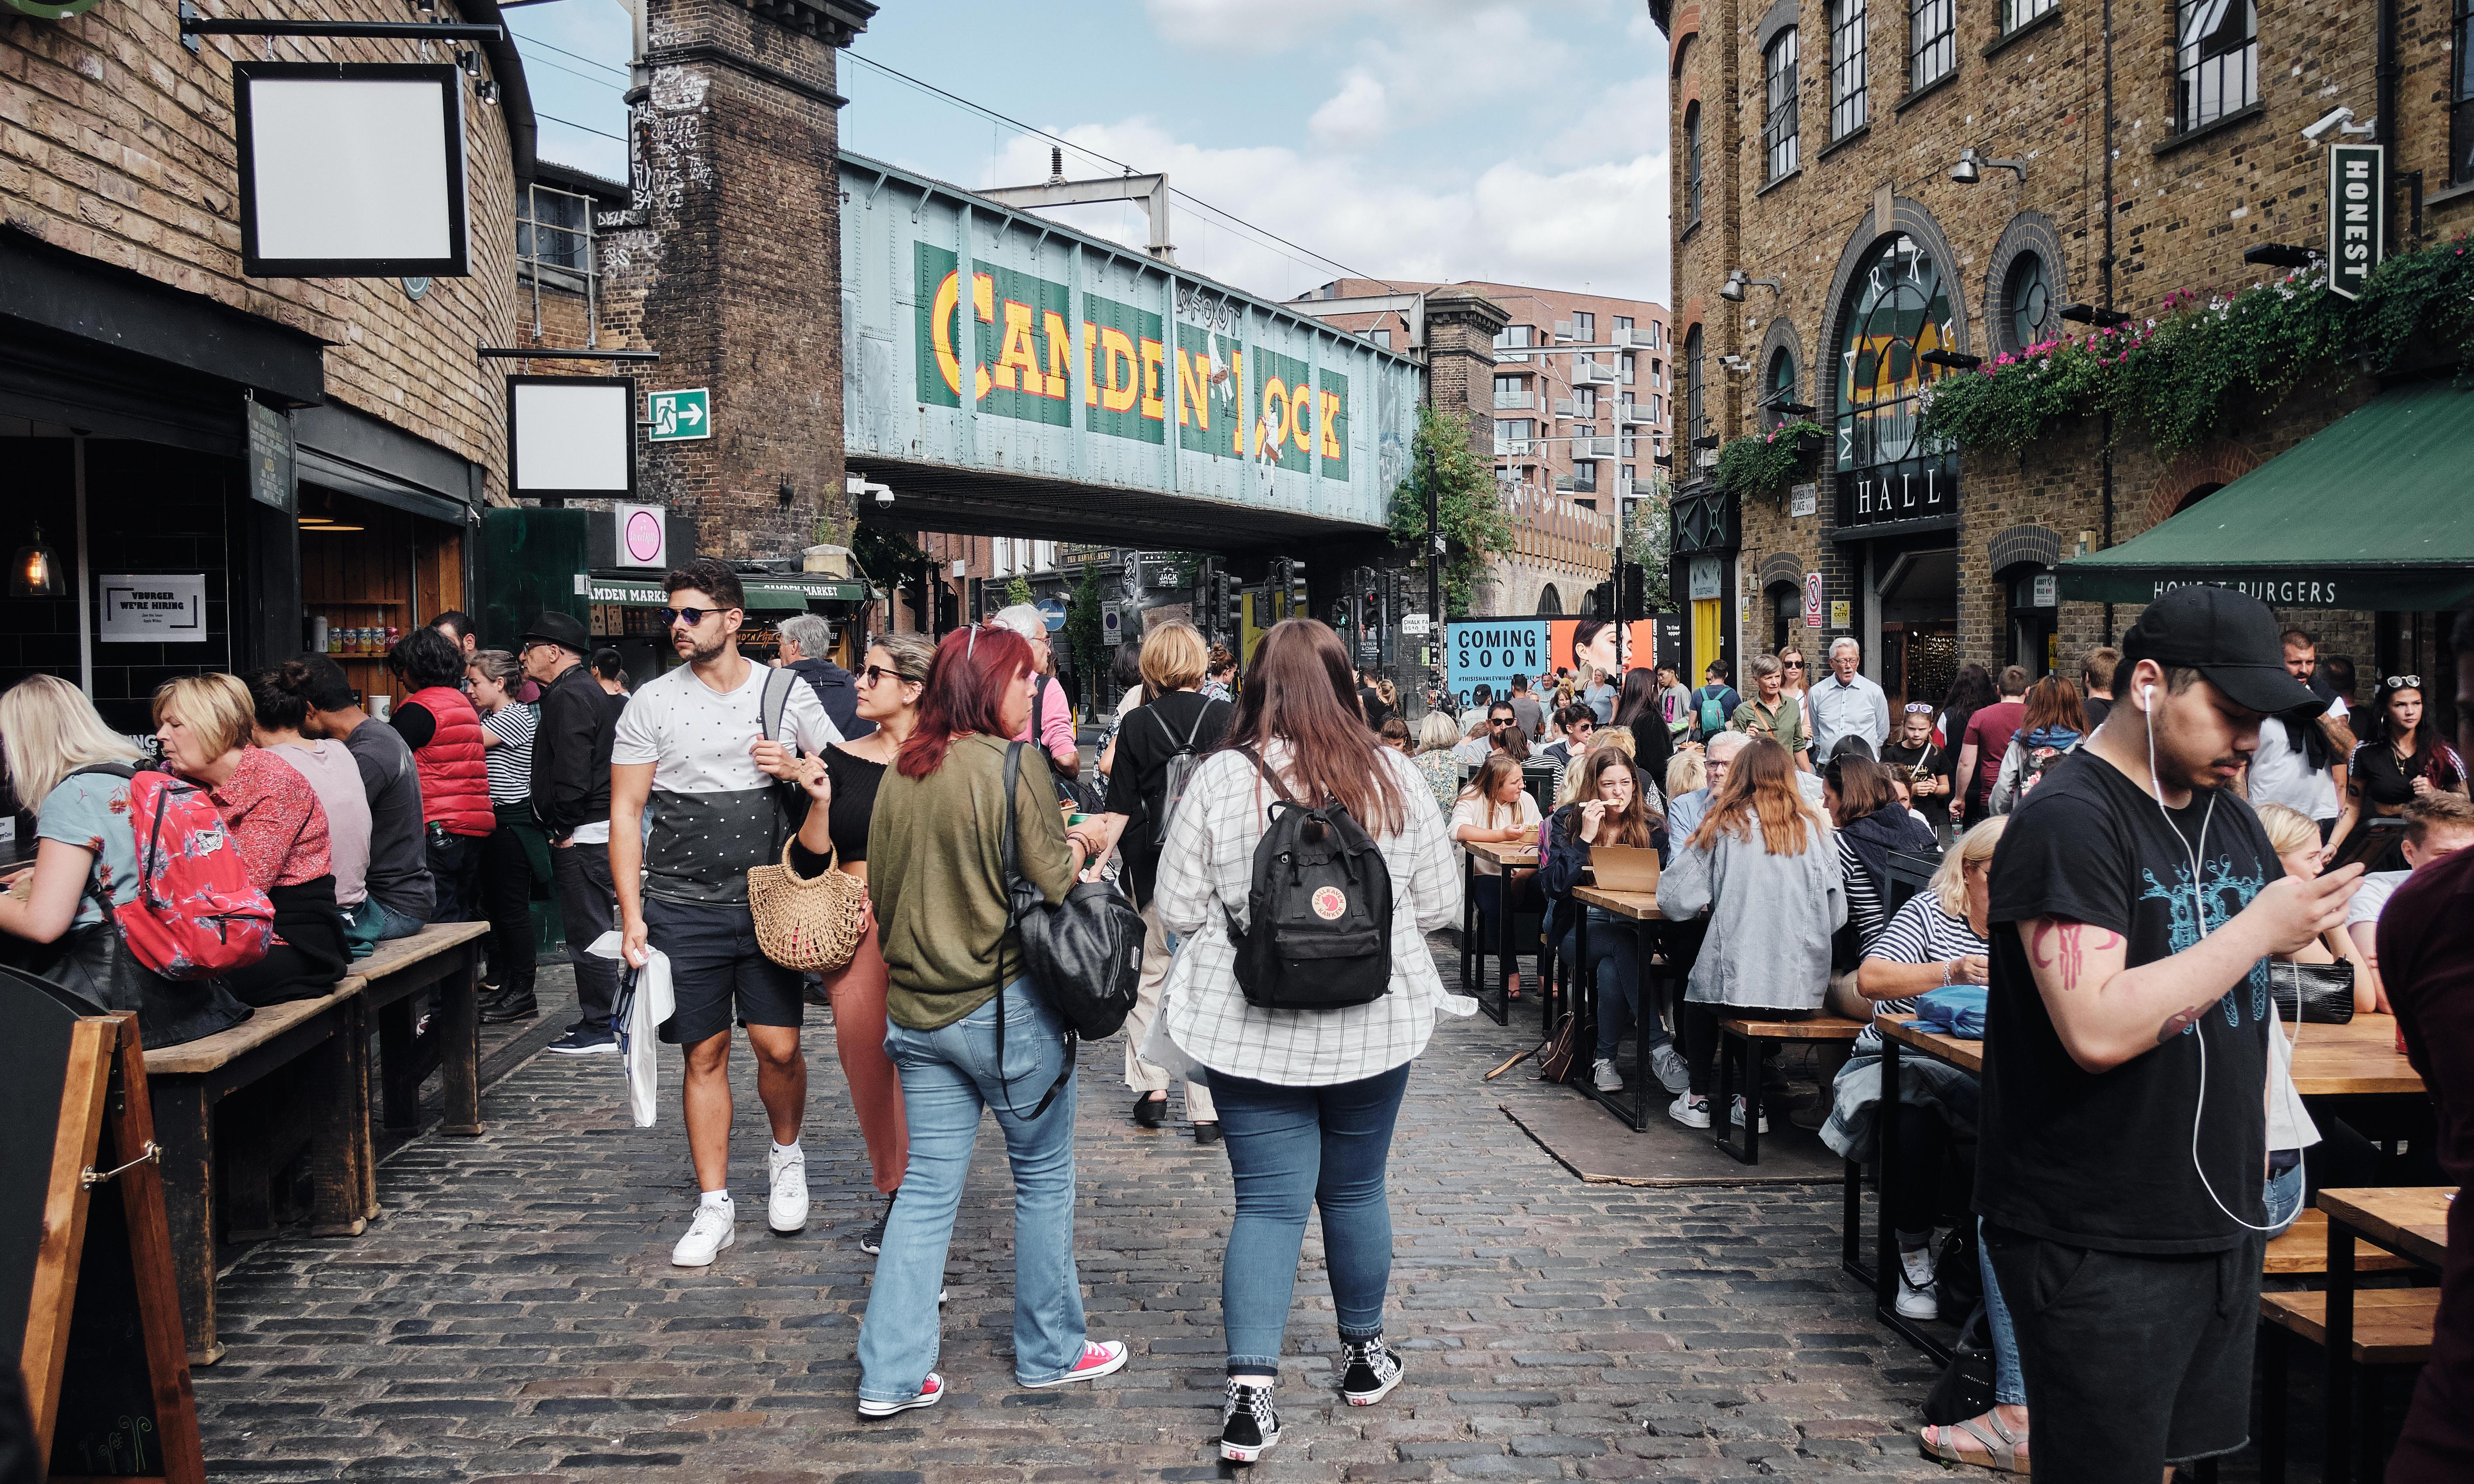 How London's Camden Lock became a flashpoint for knife gang killings